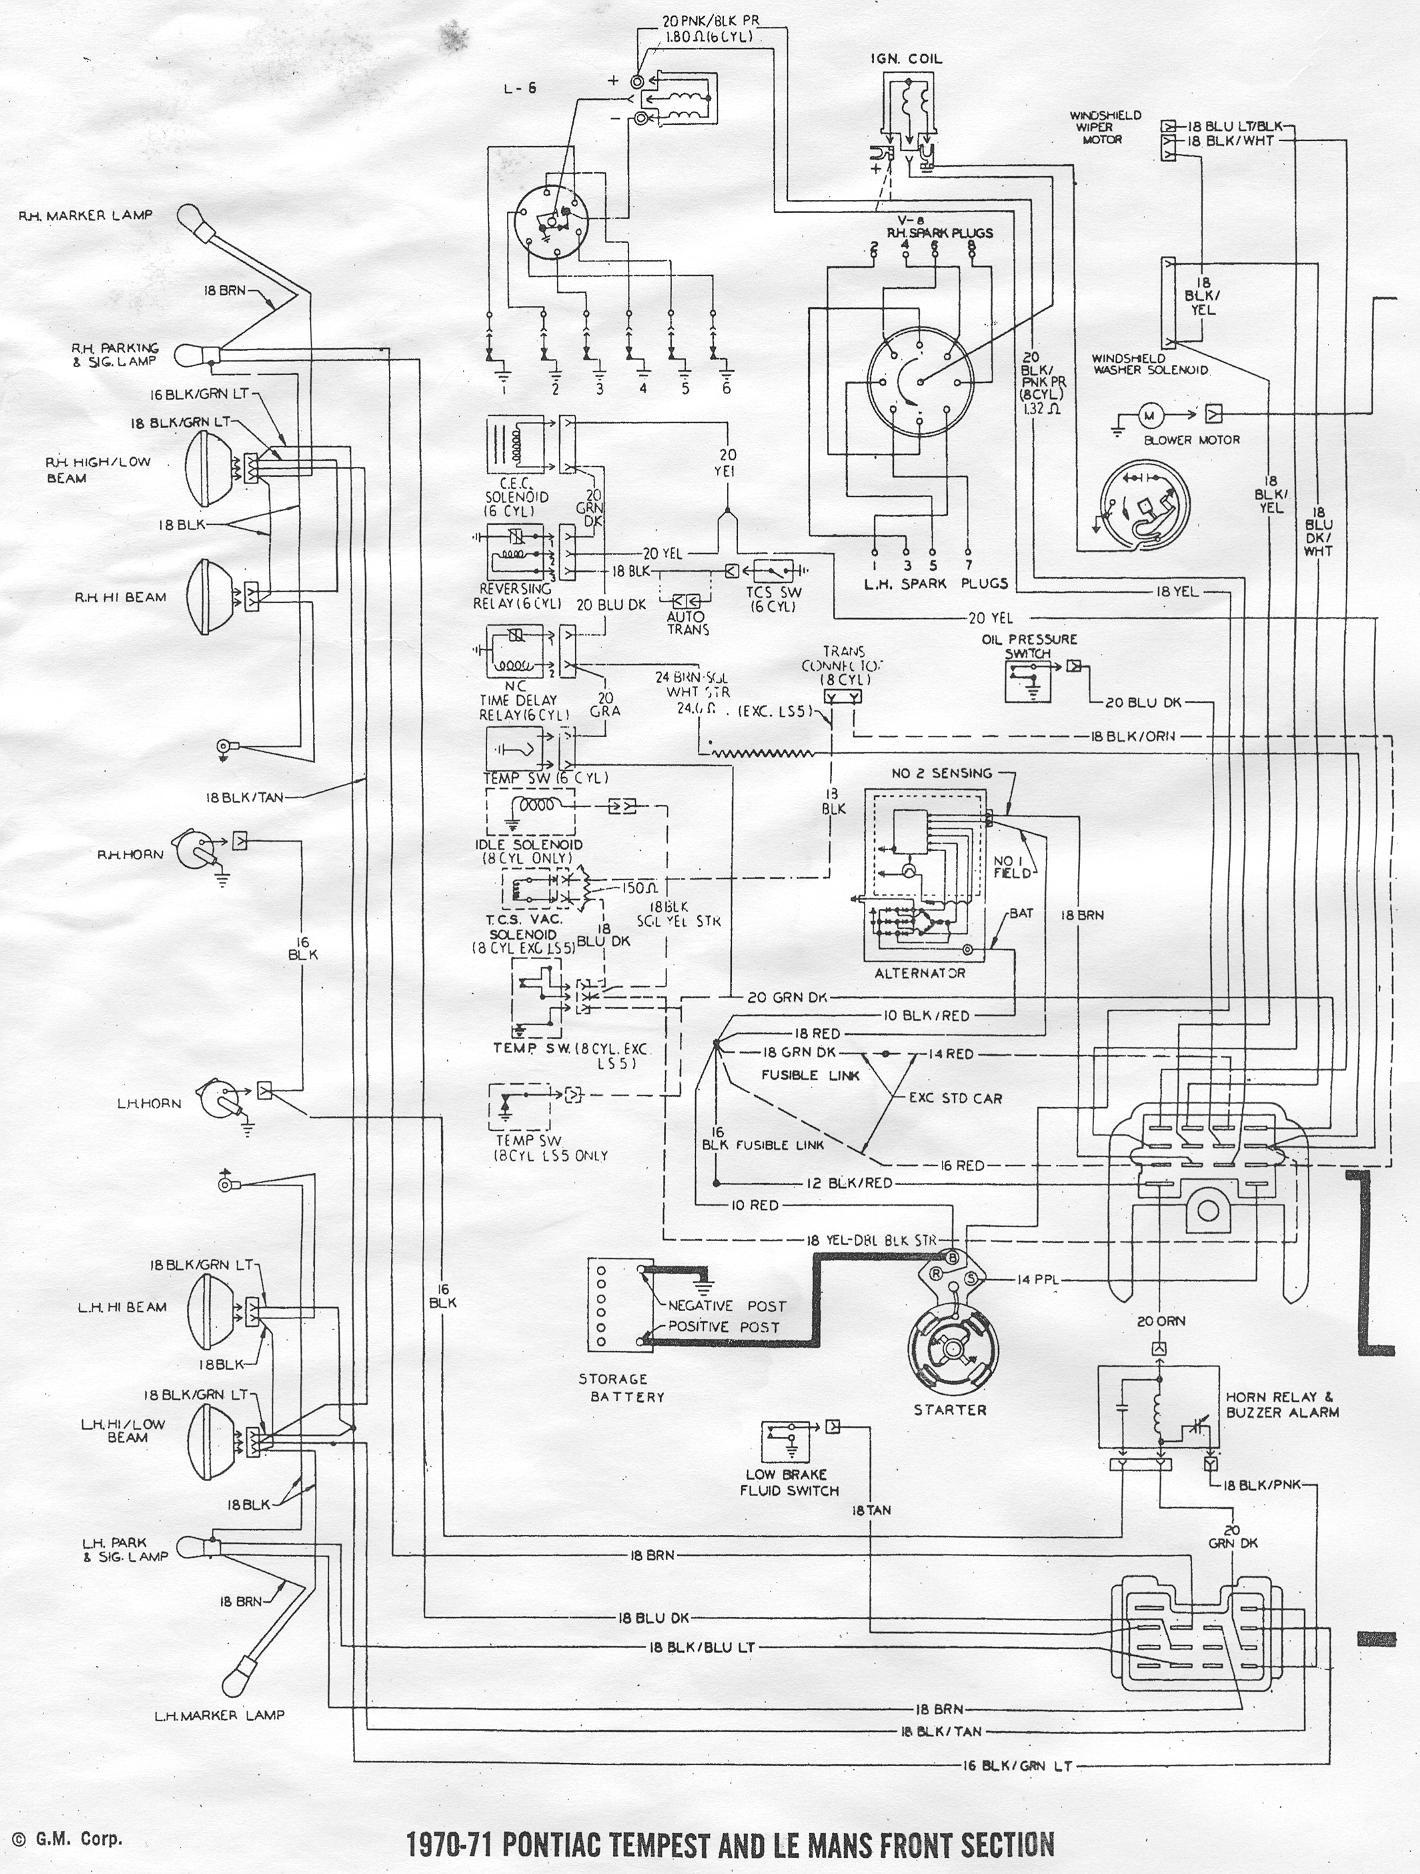 chevelle wiring harness wiring diagram 1964 77 chevelle wiring harness kit highway 22 by american